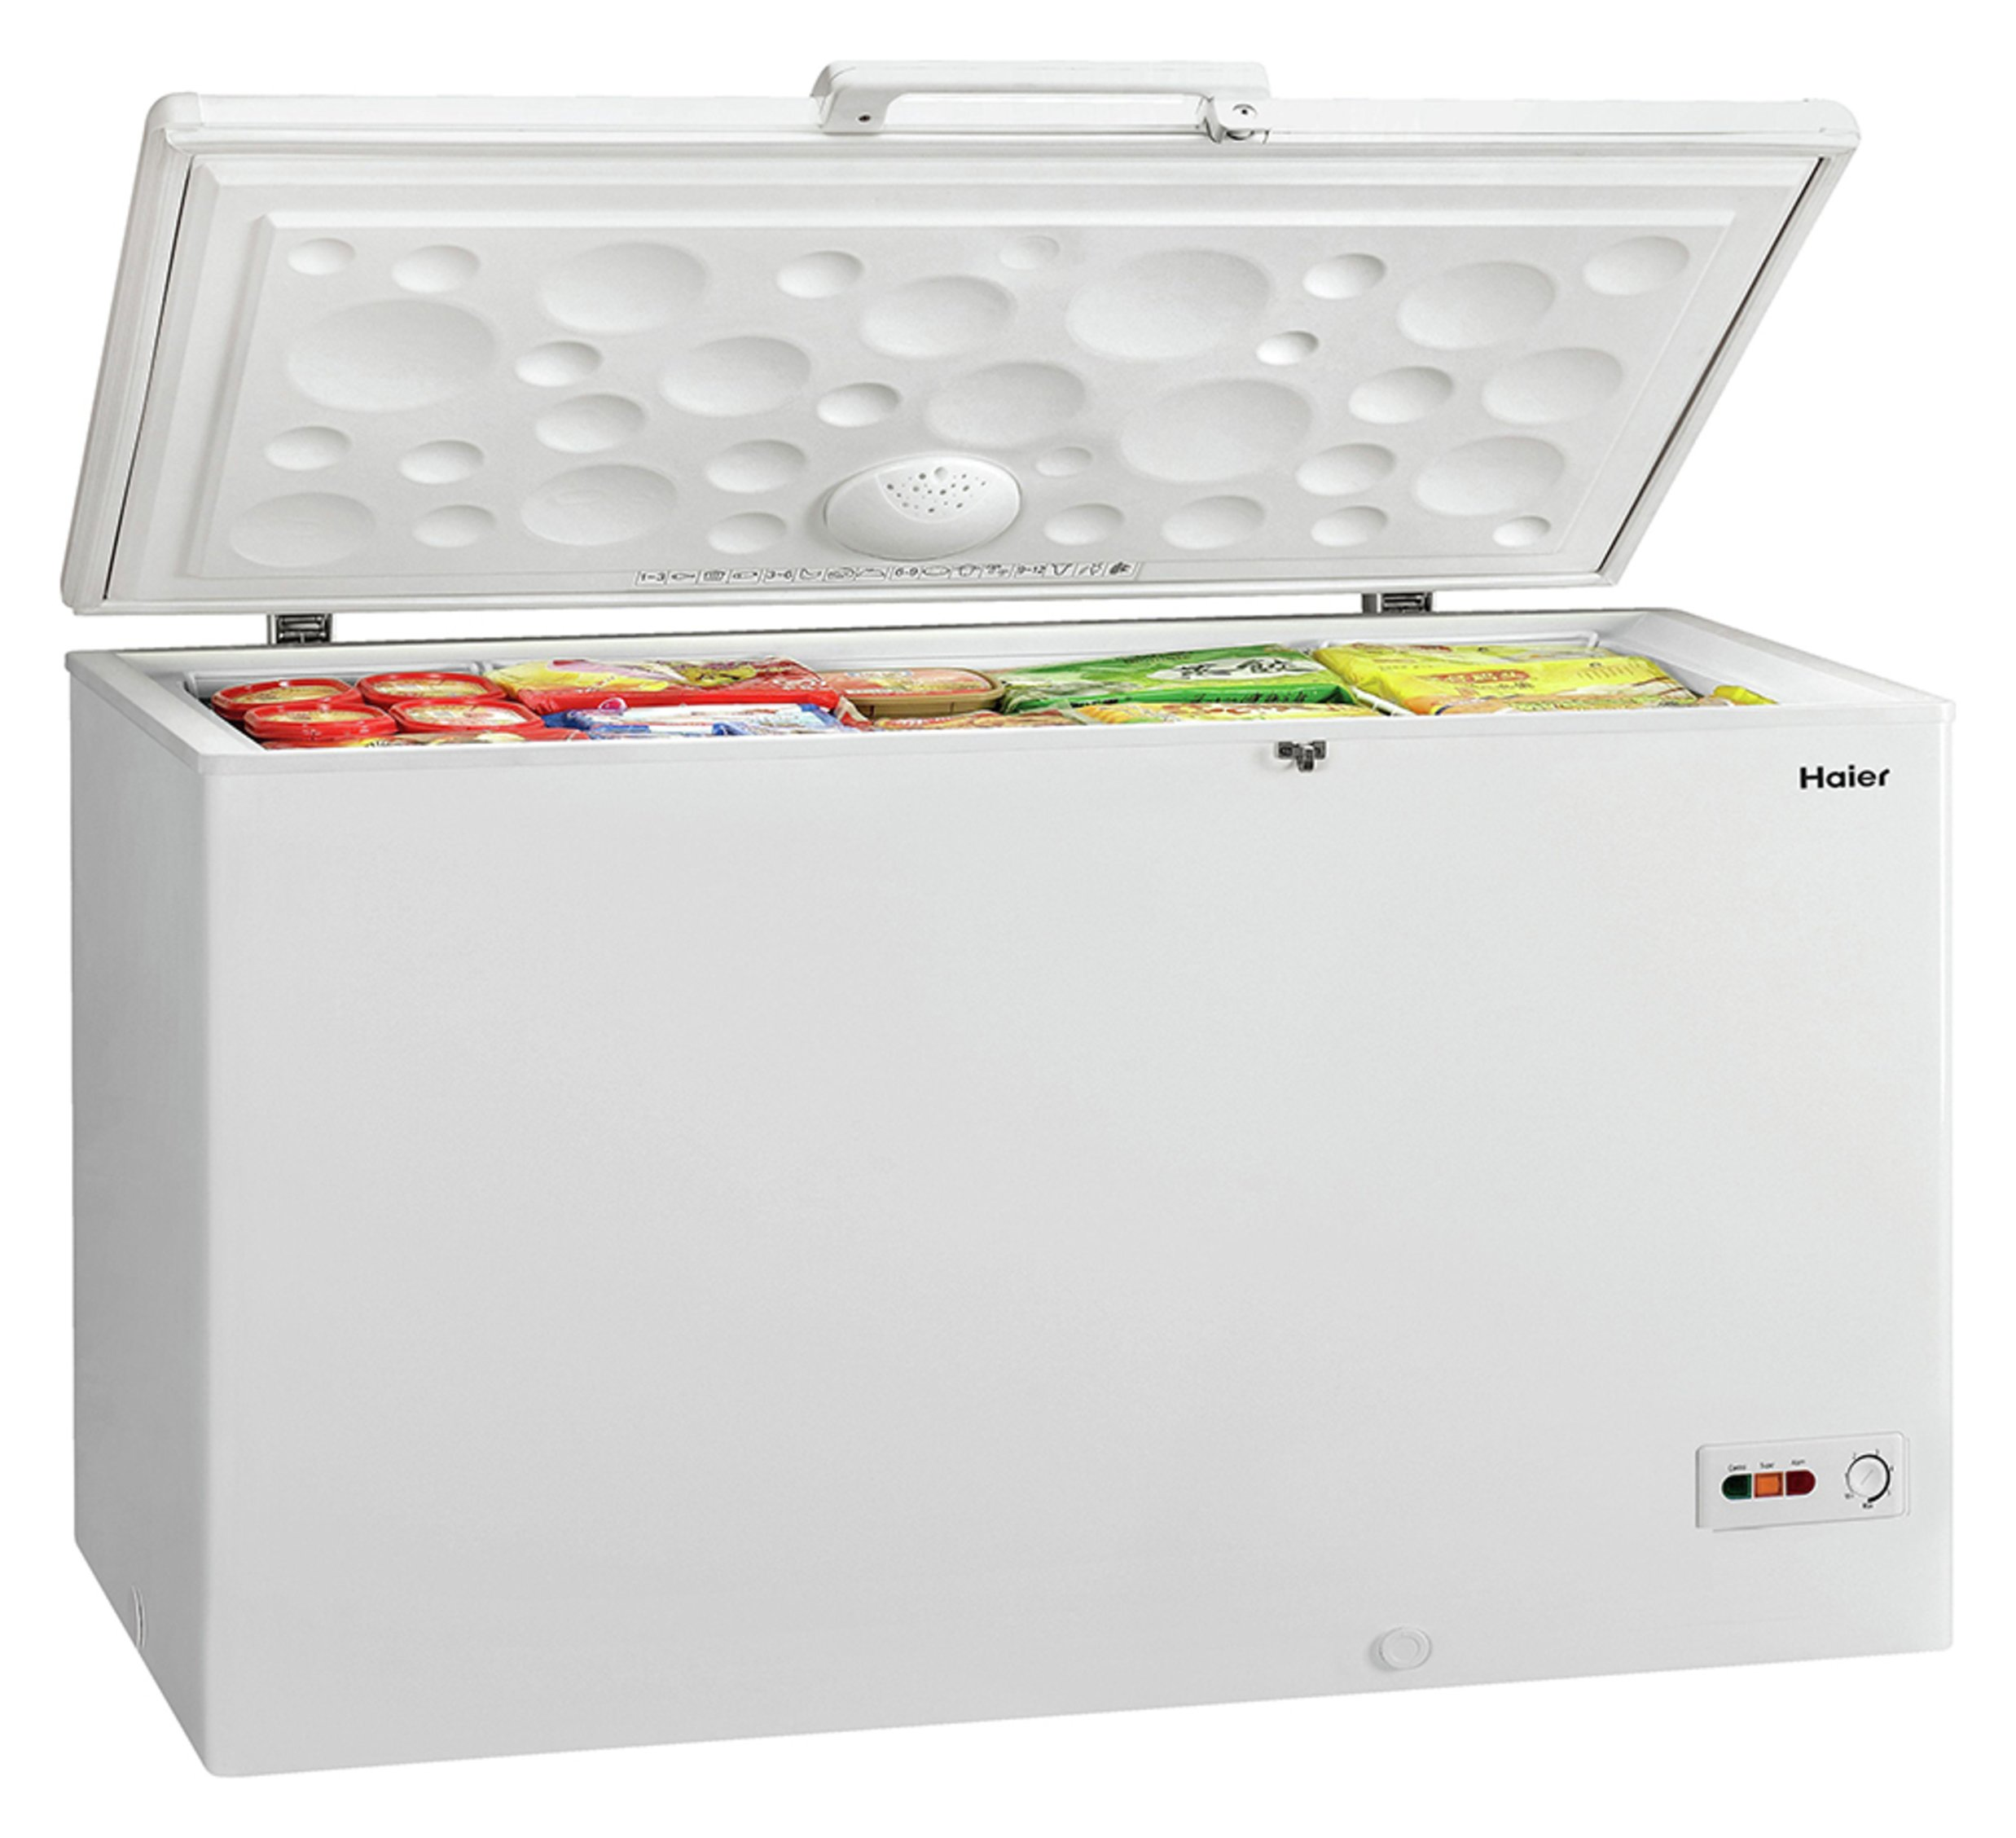 Image of Haier BD-429RAA Chest Freezer - White With Installation